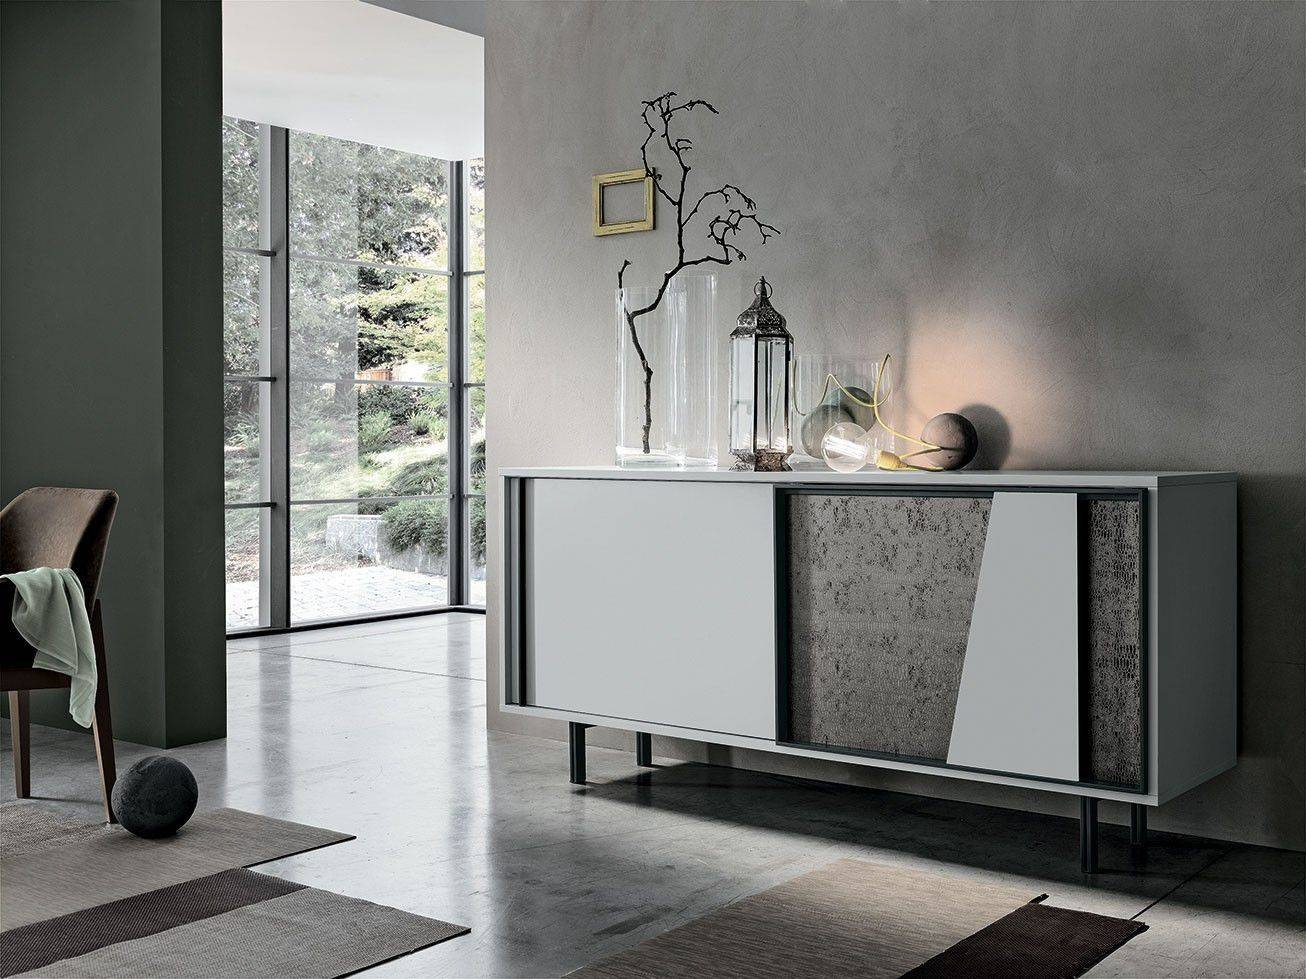 Contemporary Sideboard / Iron / Painted Metal / Laminate - Modus intended for Metal Sideboards (Image 6 of 30)